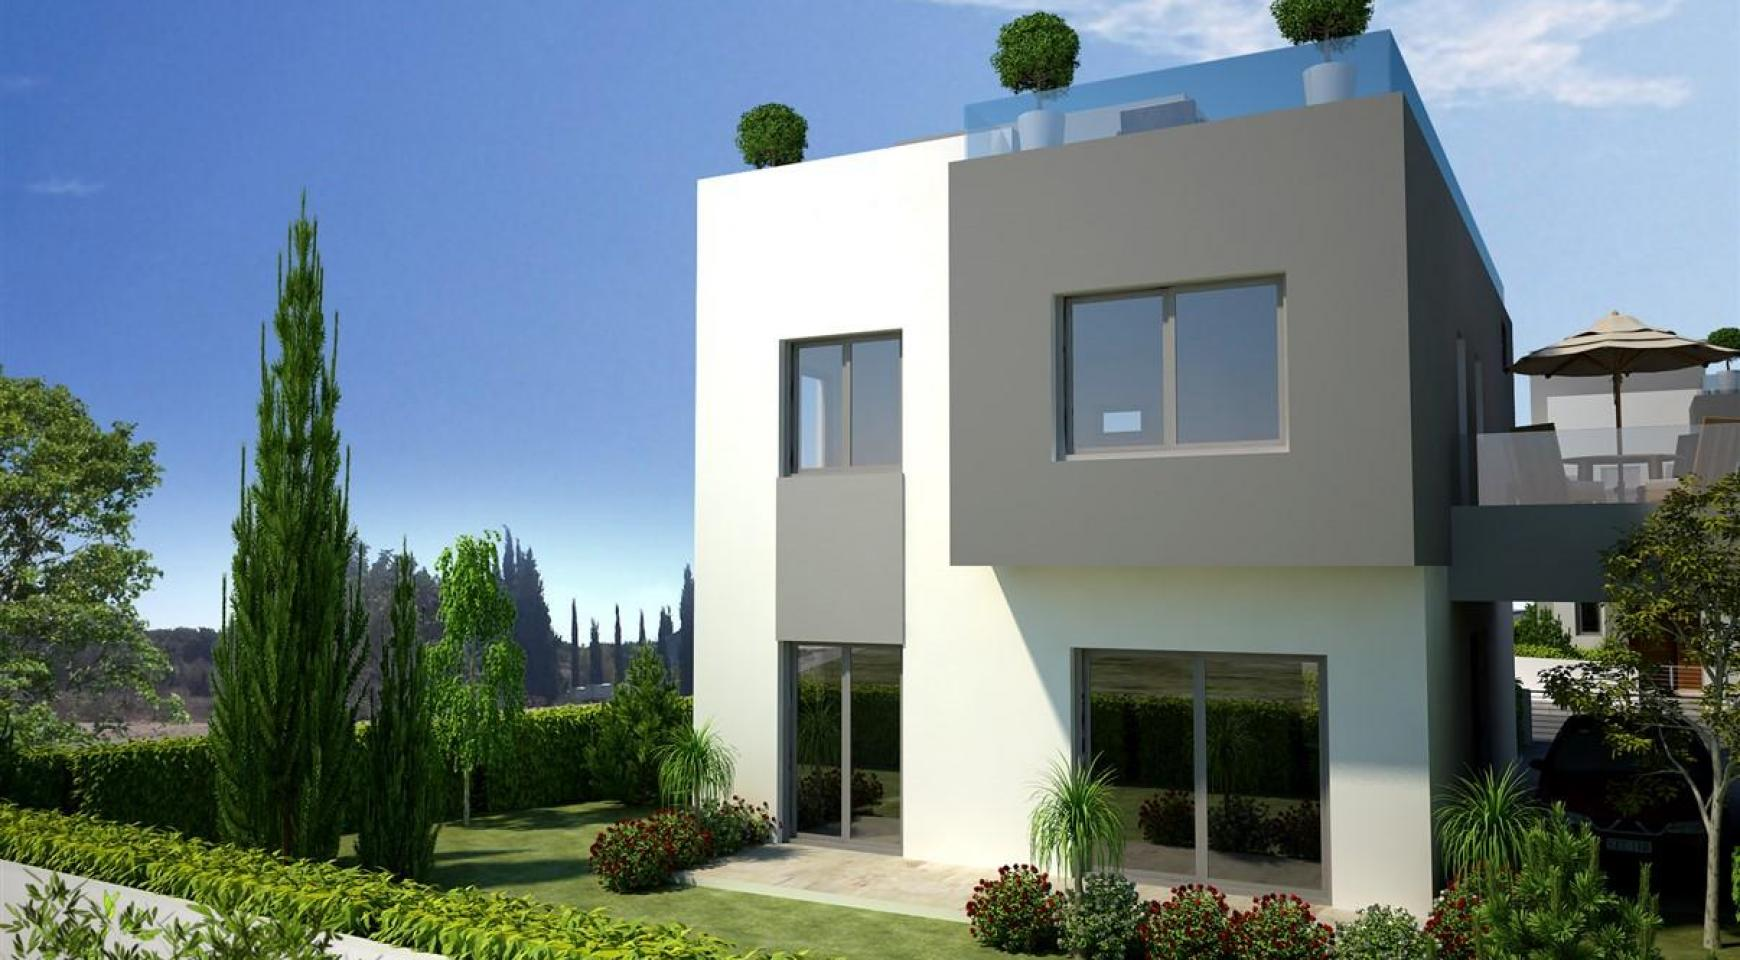 3 Bedroom Villa within a New Project - 30